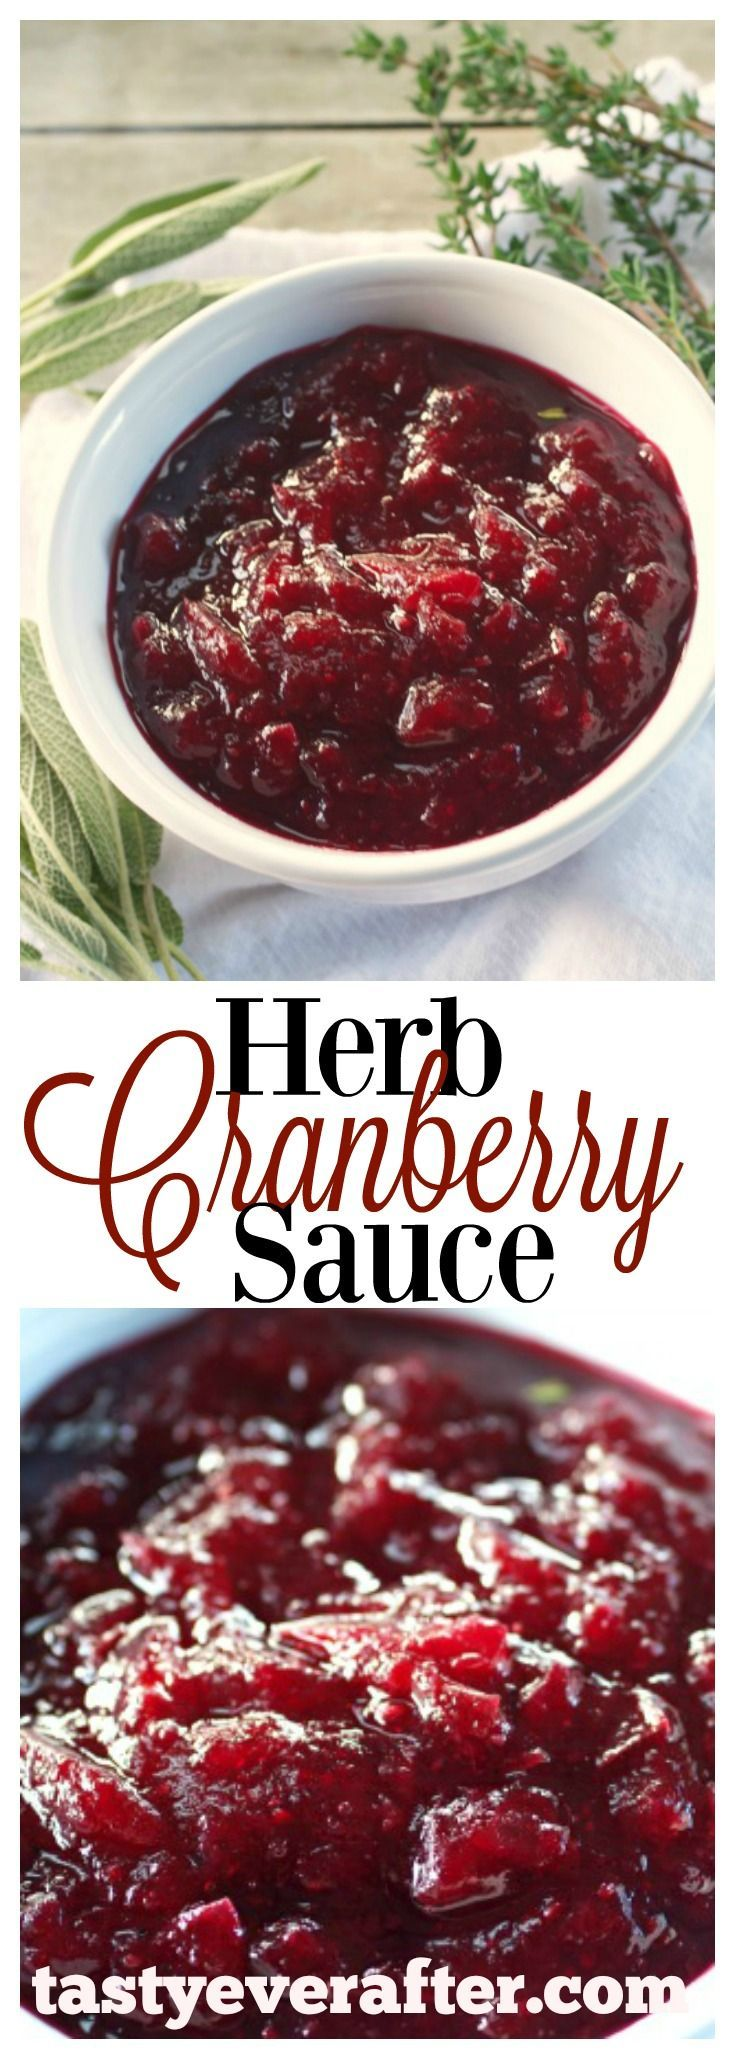 My favorite easy cranberry sauce for Thanksgiving!  Video on how to make it is included too.